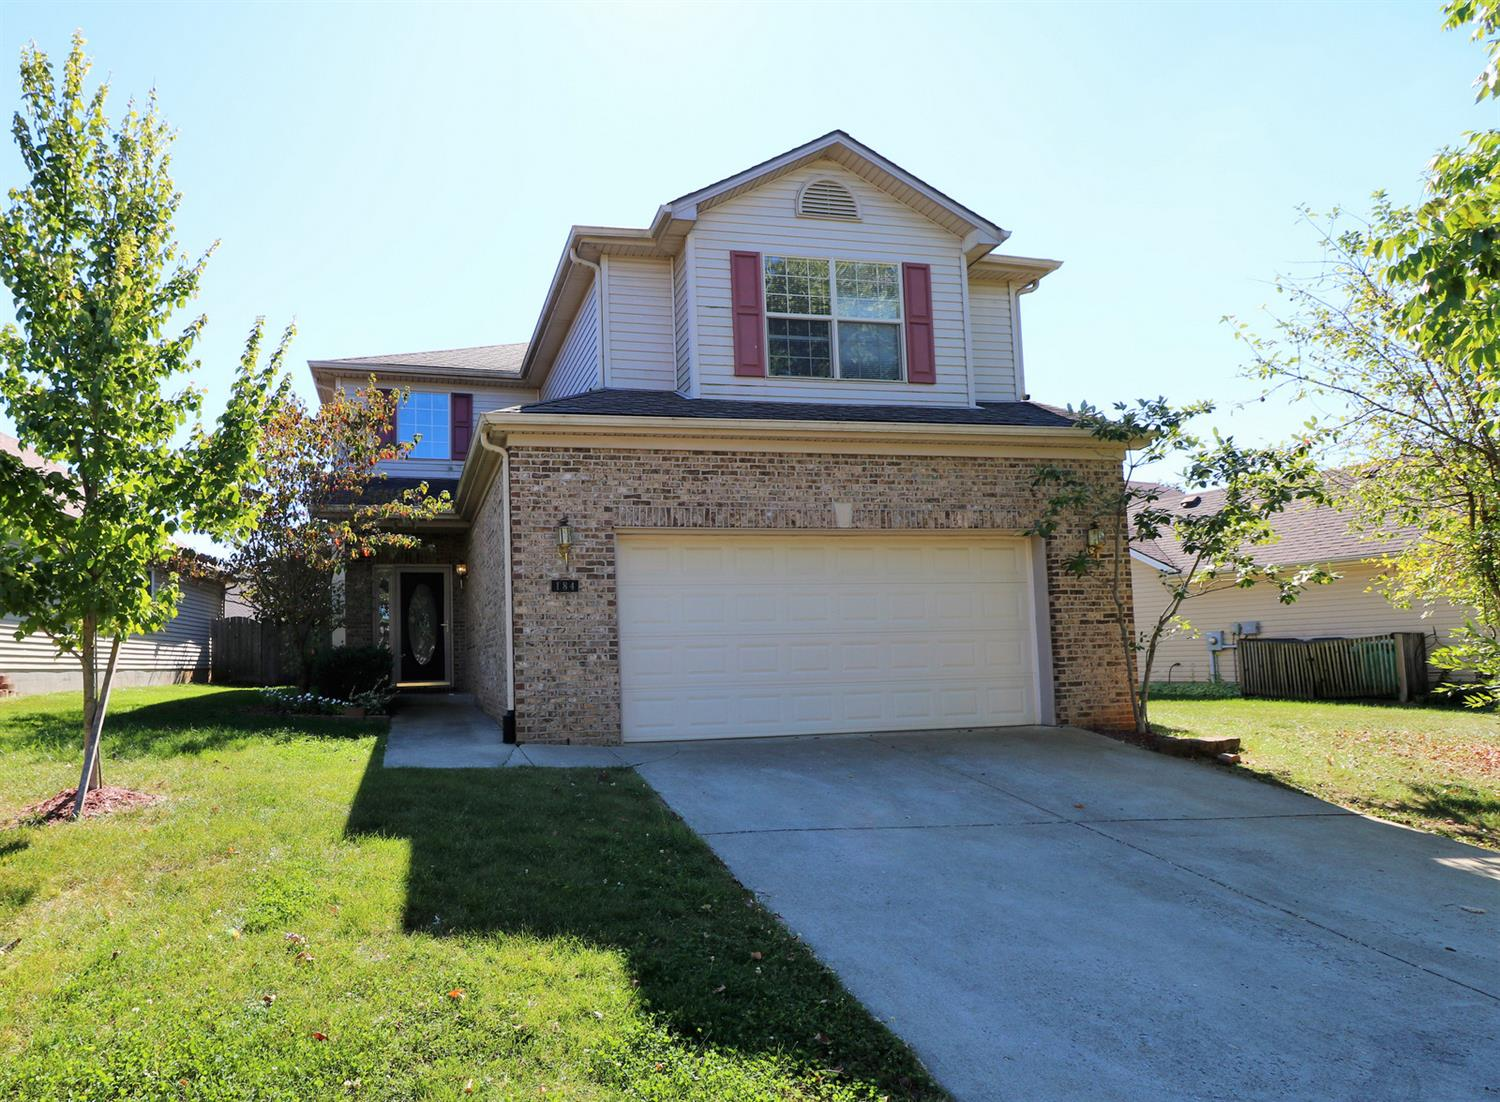 Beautiful%202-story%20home%20with%209-ft.%20ceilings%20on%20first%20floor%20plus%20lots%20of%20windows!%20This%20home%20is%20almost%201800%20sq.ft.%20and%20includes%20a%20spacious%20kitchen%20with%20an%20island%20and%20pantry.%20This%20area%20opens%20to%20a%20great%20room%20with%20gas%20fireplace%20and%20ceramic%20hearth%20plus%20entertainment%20center%20above.%20Upstairs%20you'll%20find%20the%20utility%20area%20as%20well%20as%20a%20fabulous%20master%20suite%20with%202%20walk-in%20closets%20and%20nice%20bath%20area%20with%20garden%20tub%20and%20double%20sink.%20Add%20to%20this%203%20additional%20bedrooms%20and%20another%20full%20bathroom!%20Schedule%20to%20see%20this%20special%20home%20soon!